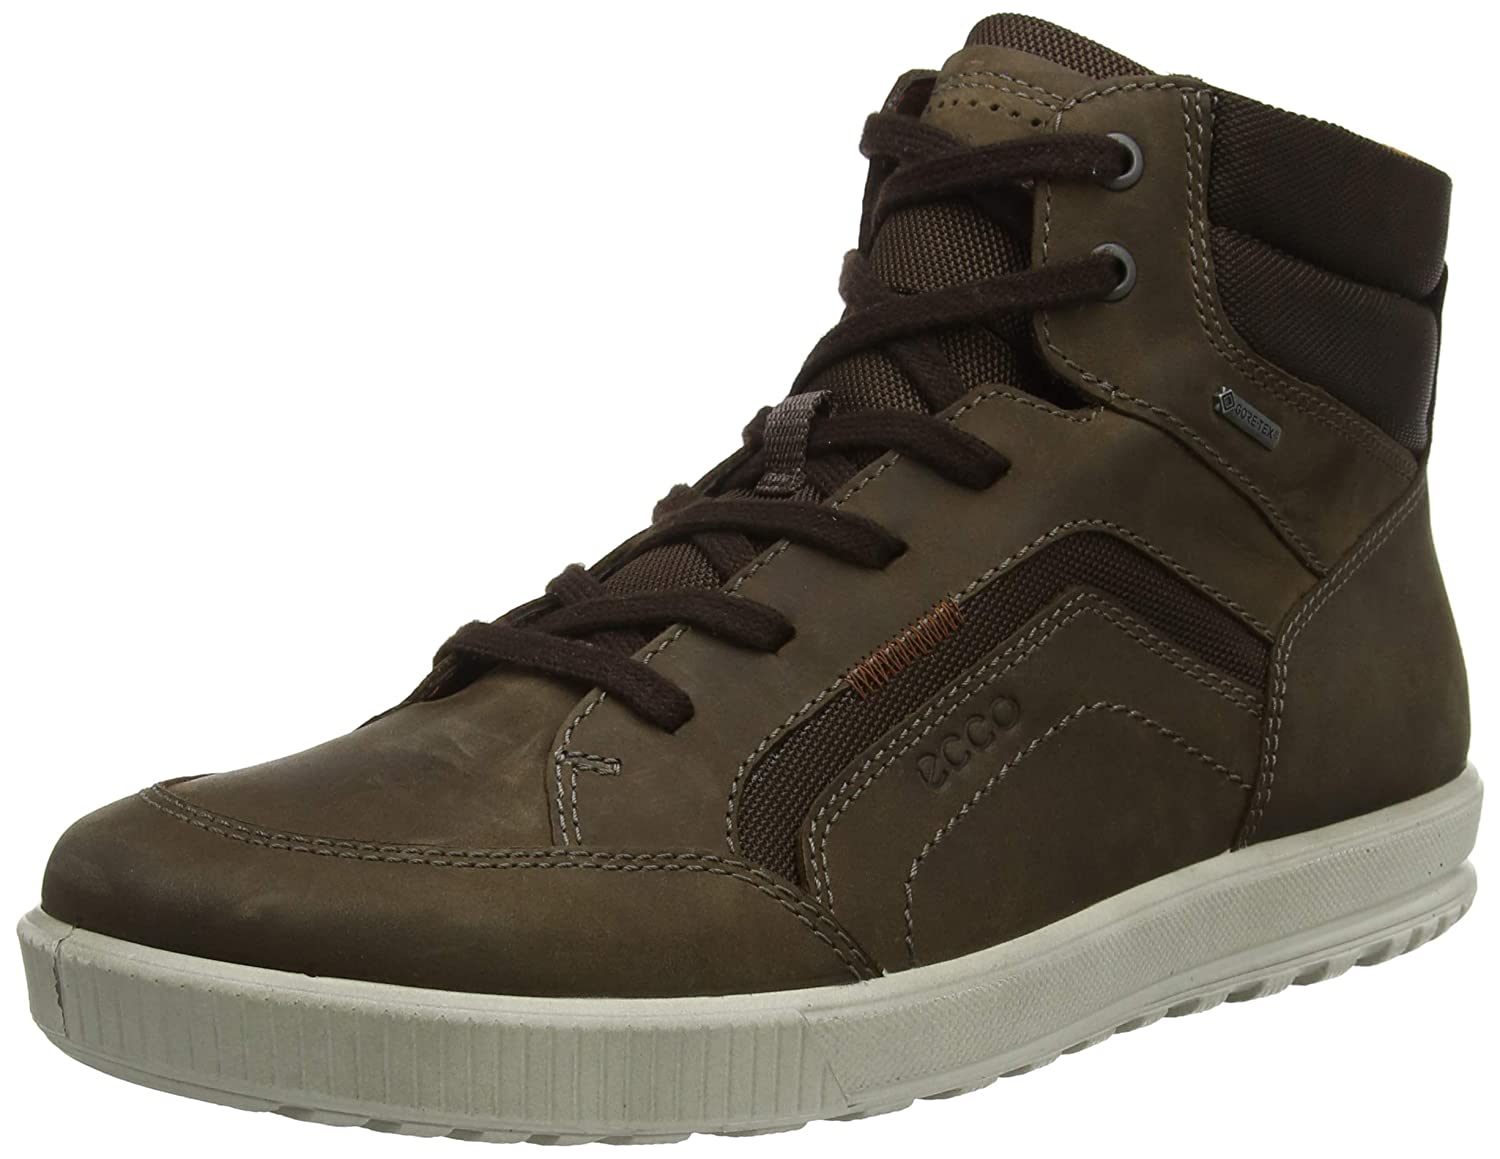 Brown (Coffee Coffee) ECCO Men's Ennio Hi-Top Trainers